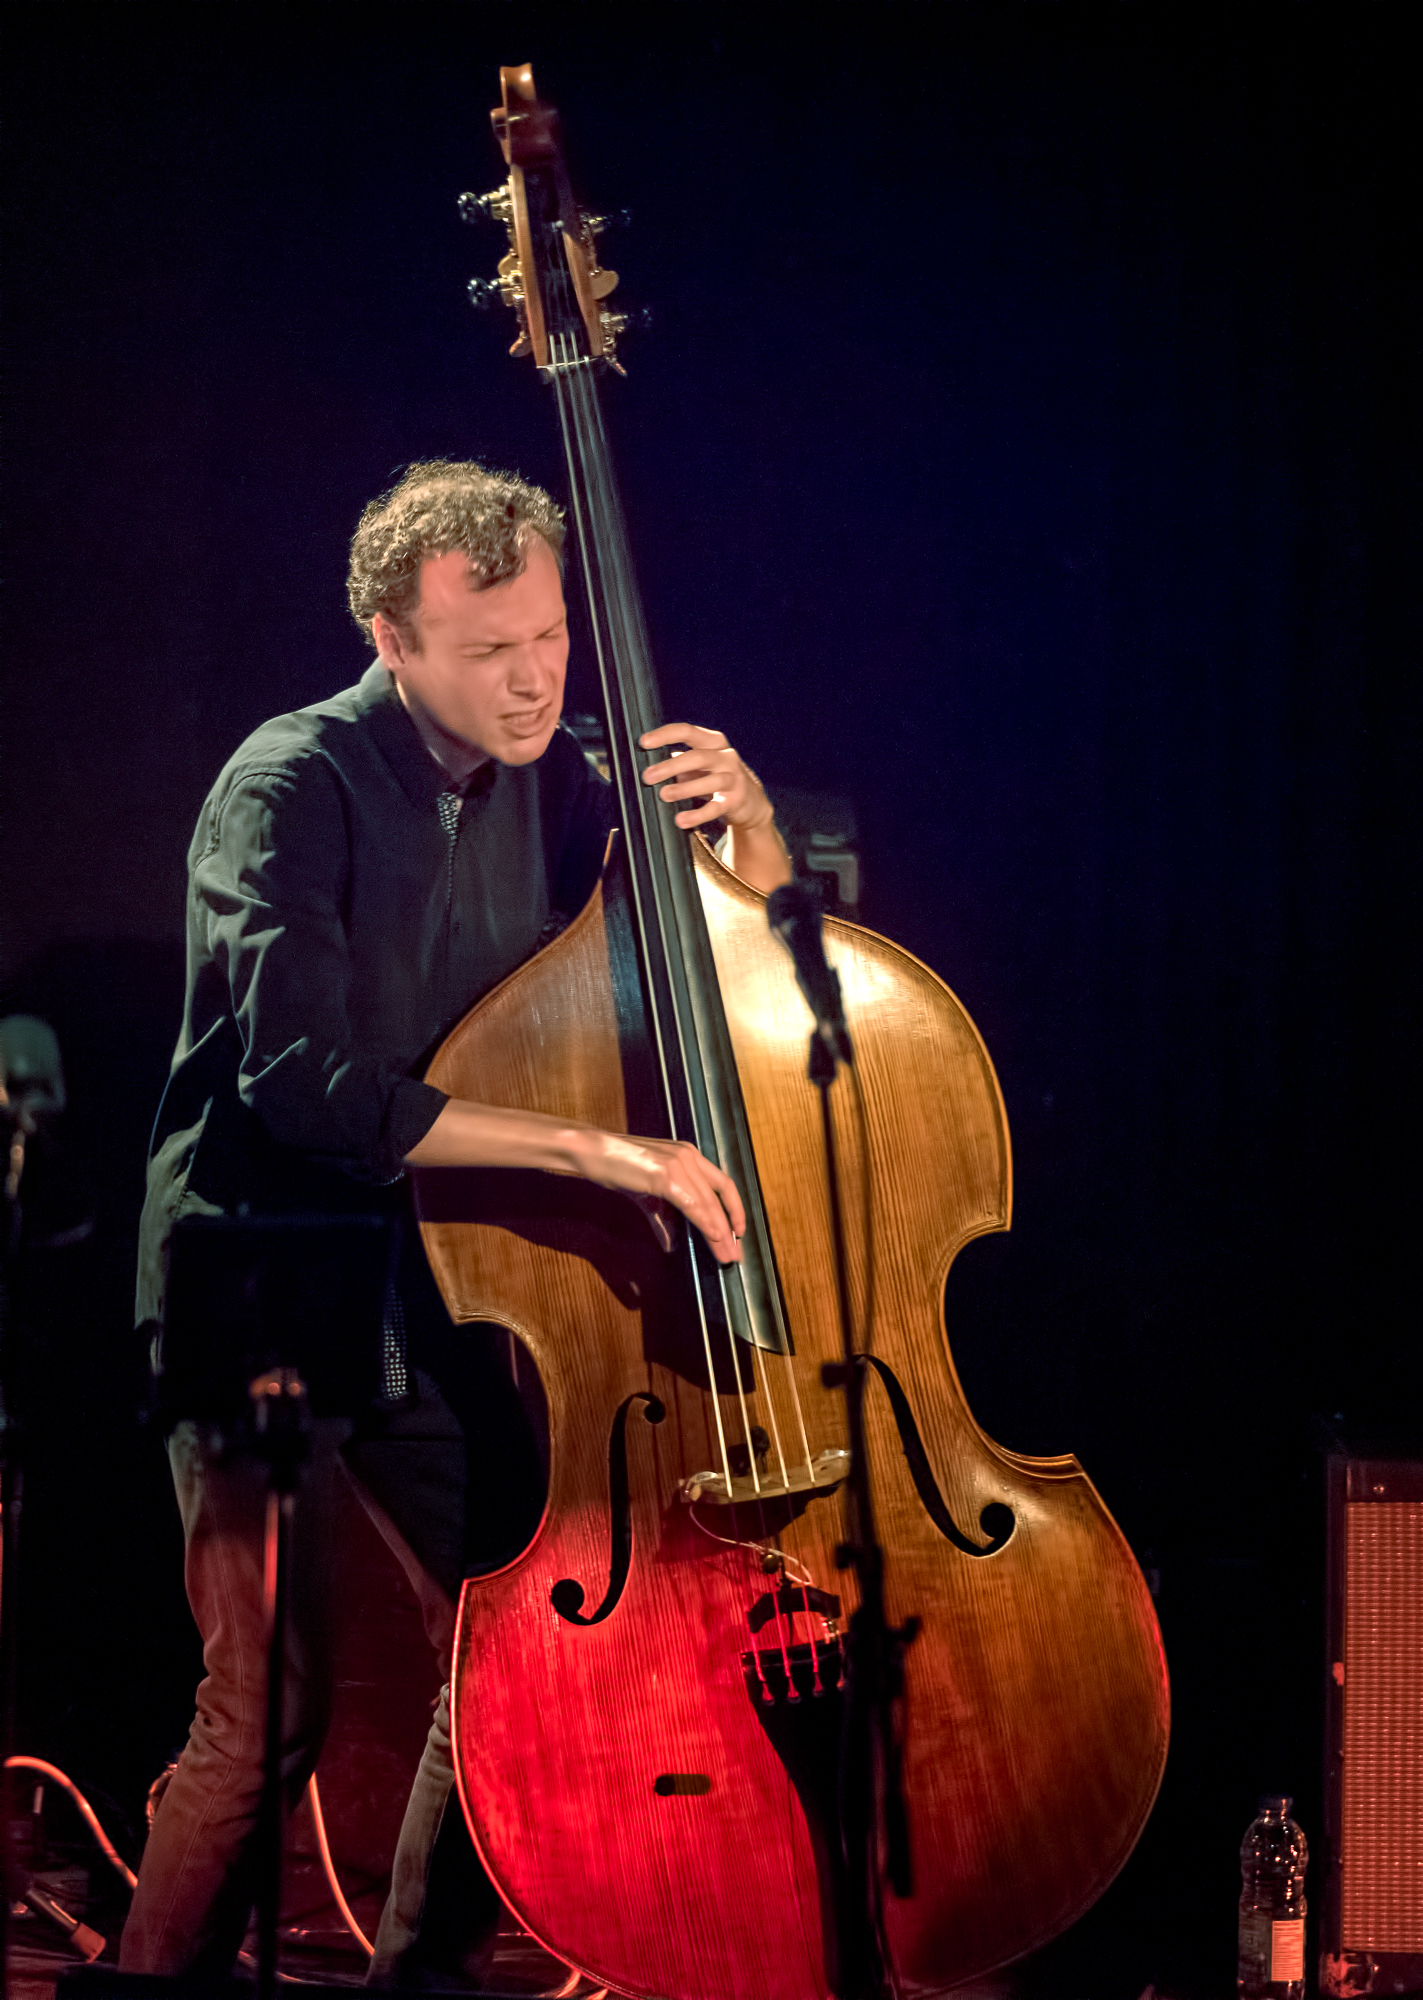 Nicolas Bedard with the Emie Rioux-Roussel Trio at The Montreal International Jazz Festival 2018